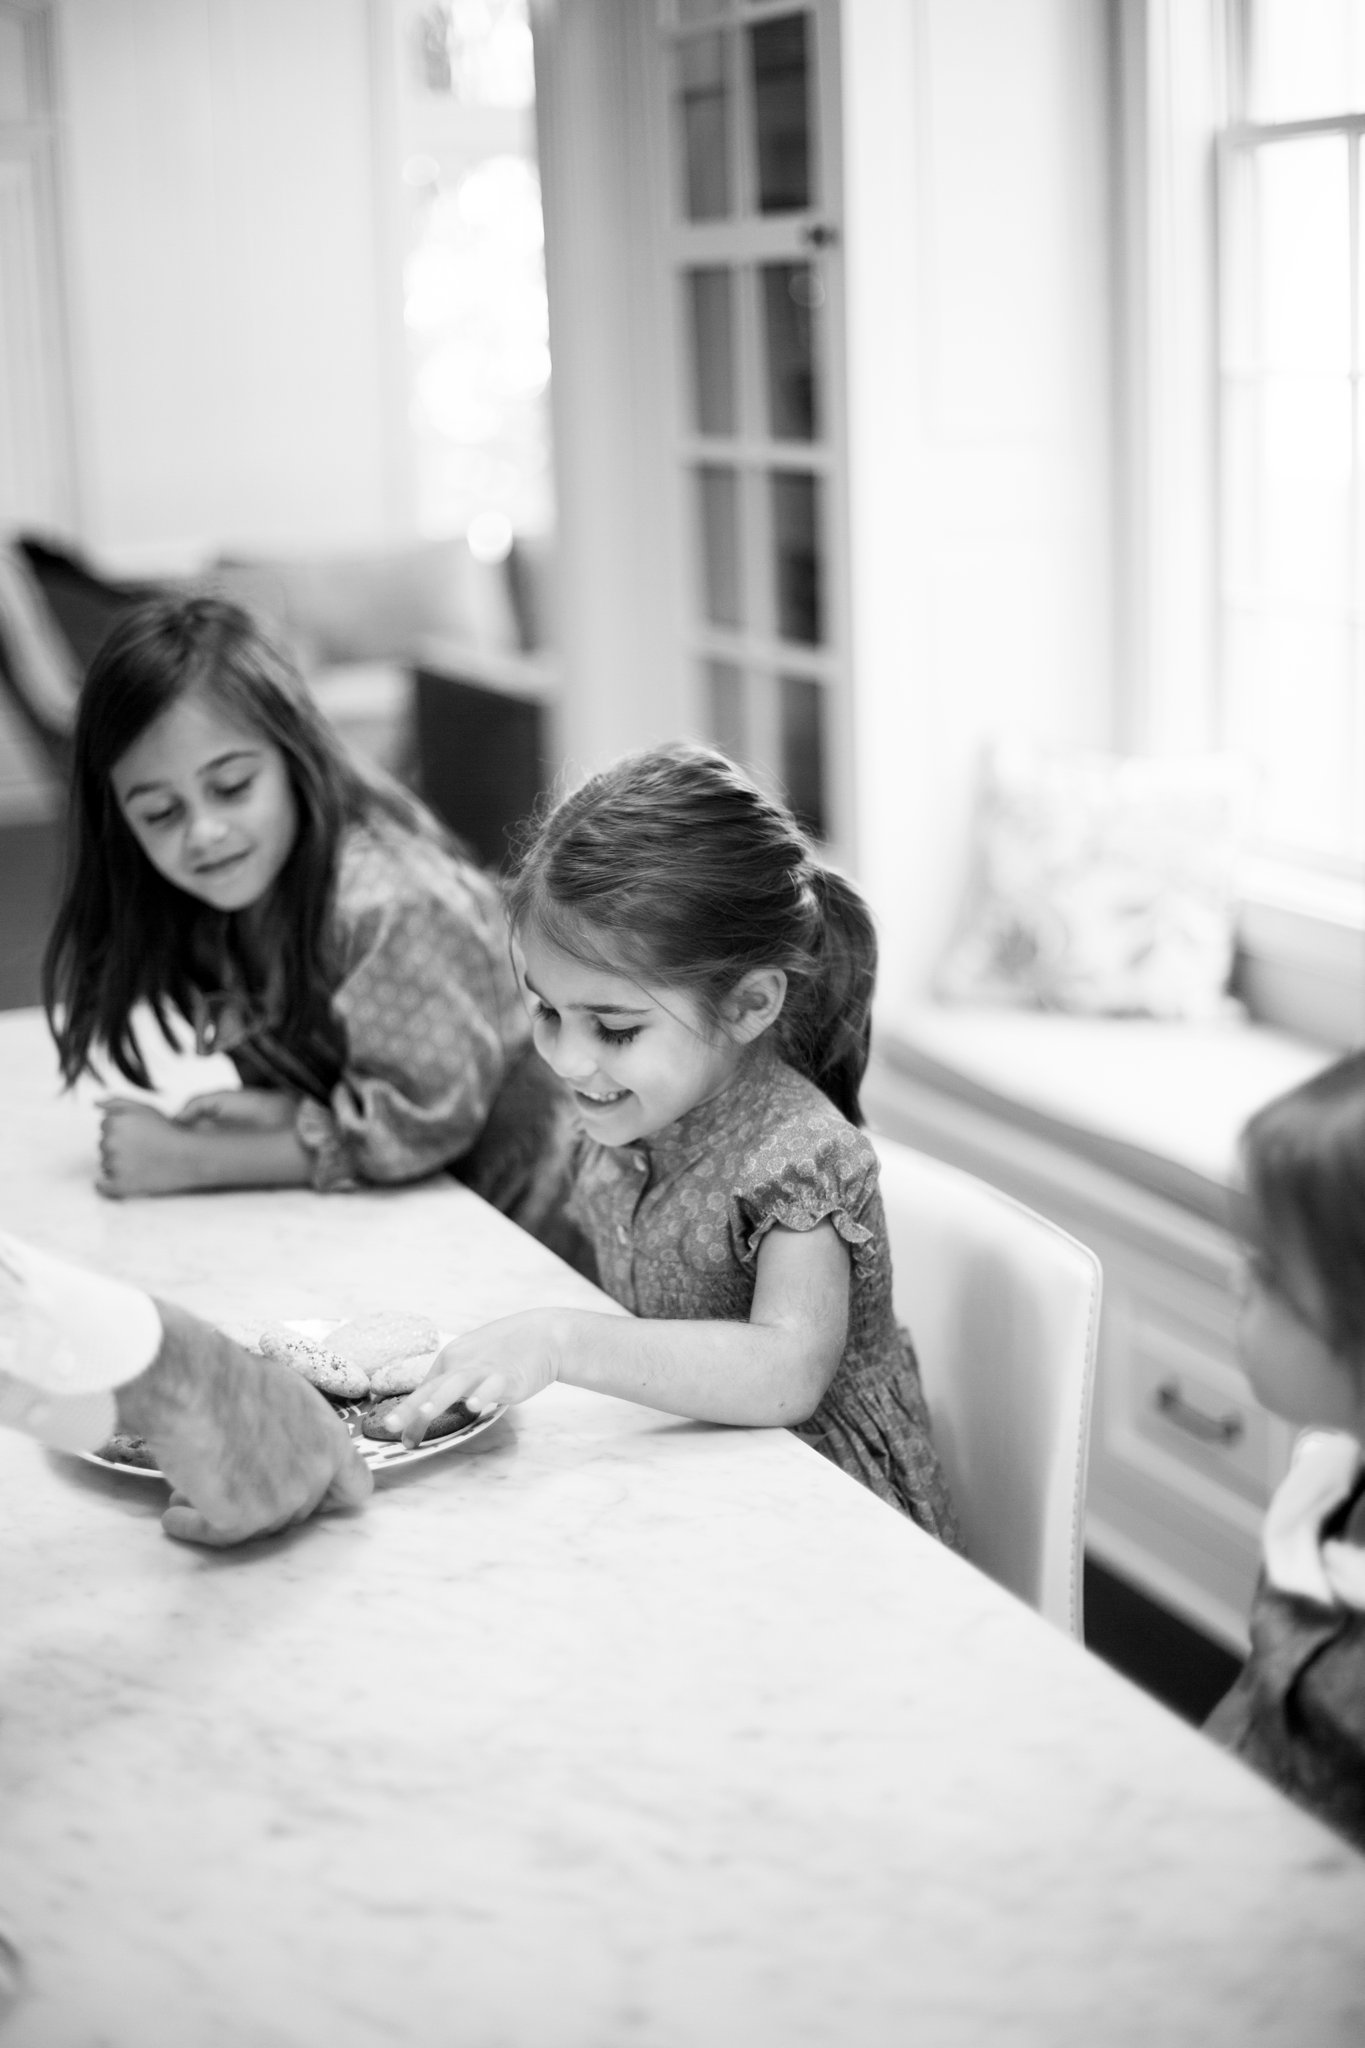 tallahassee family photographer shannon griffin photography_0030.jpg